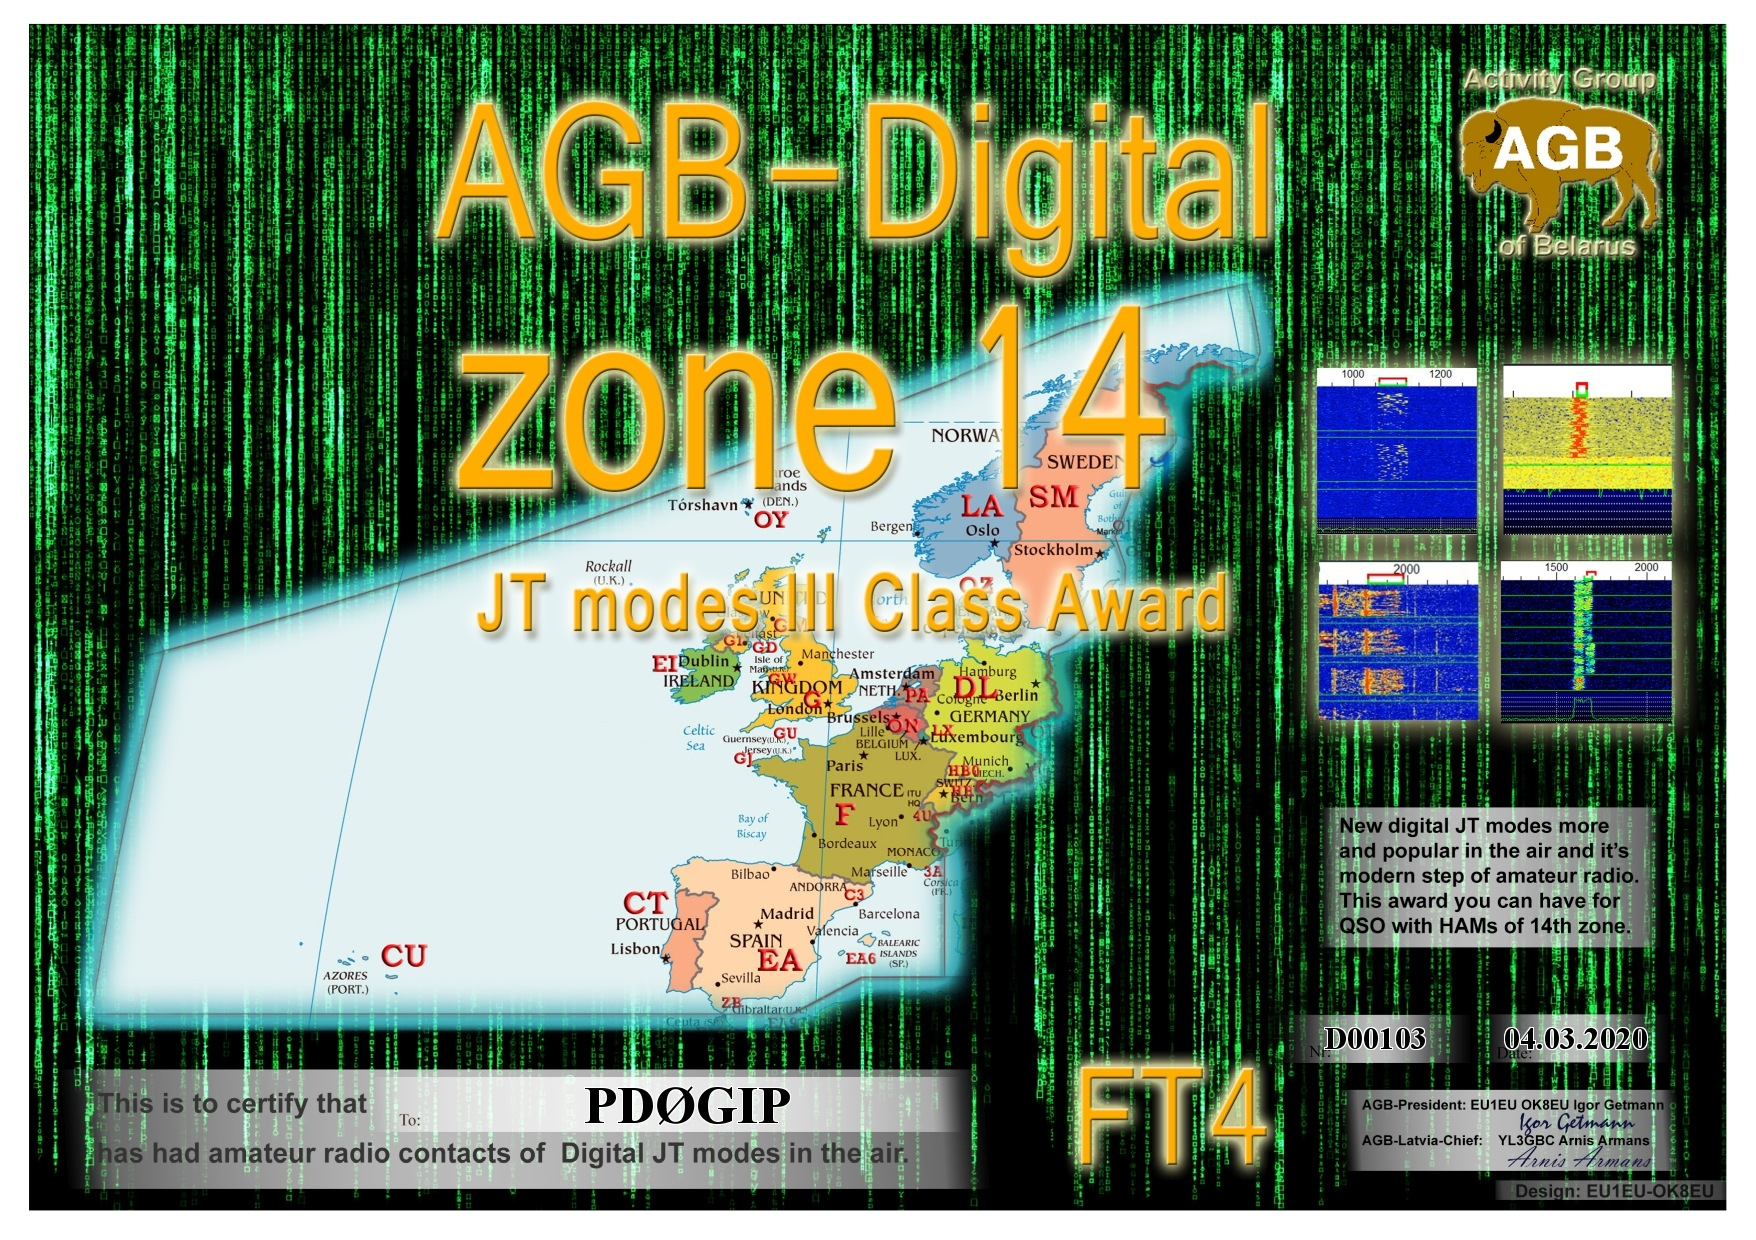 PD0GIP ZONE14 FT4 III AGB